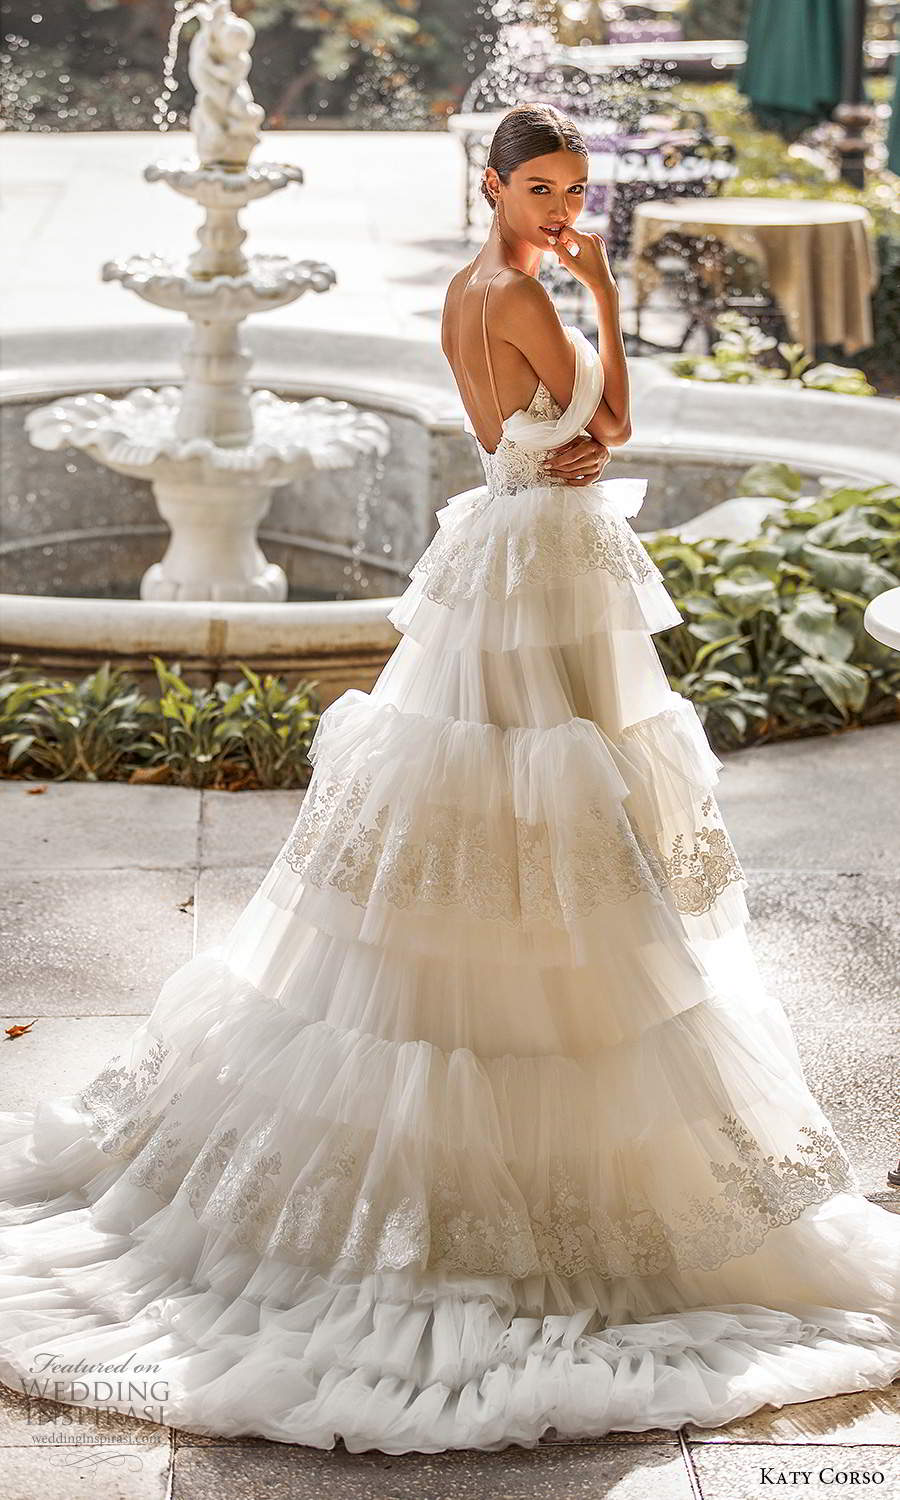 katy corso 2021 bridal off shoulder swag sleeves thin straps sweetheart neckline a line ball gown wedding dress tiered skirt chapel train (4) bv